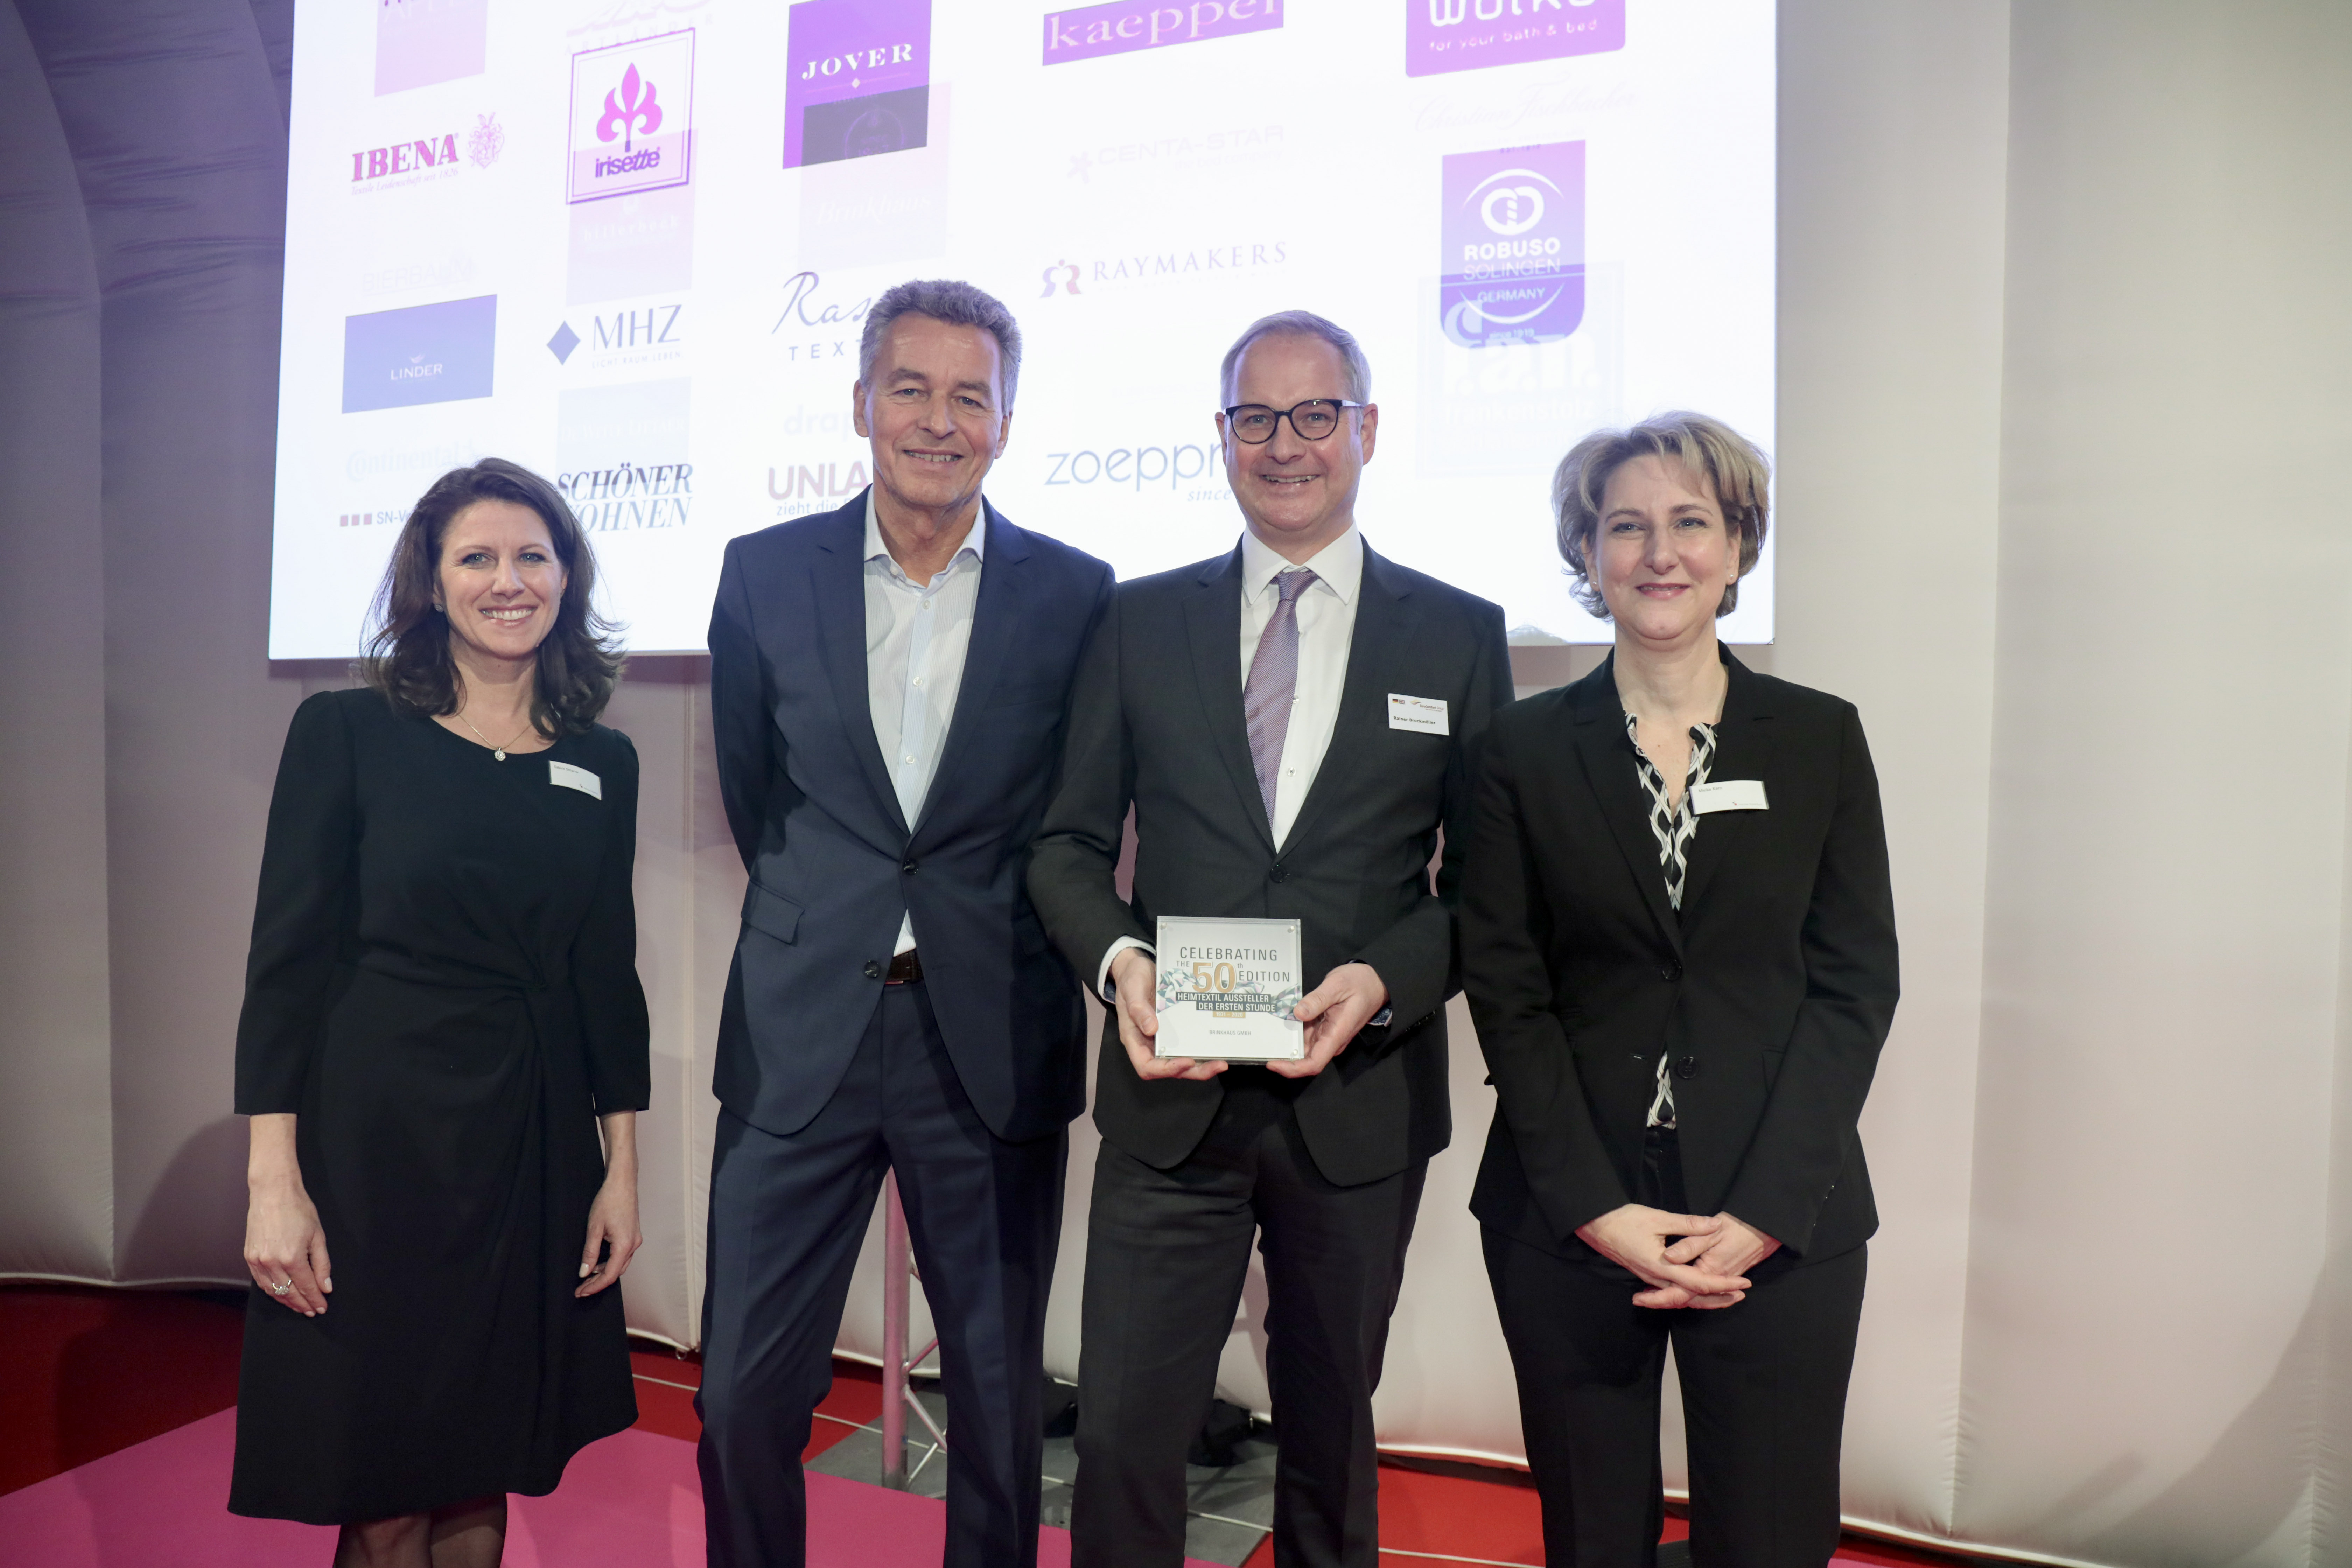 Awards ceremony for exhibitors from the very beginning / Brinkhaus GmbH